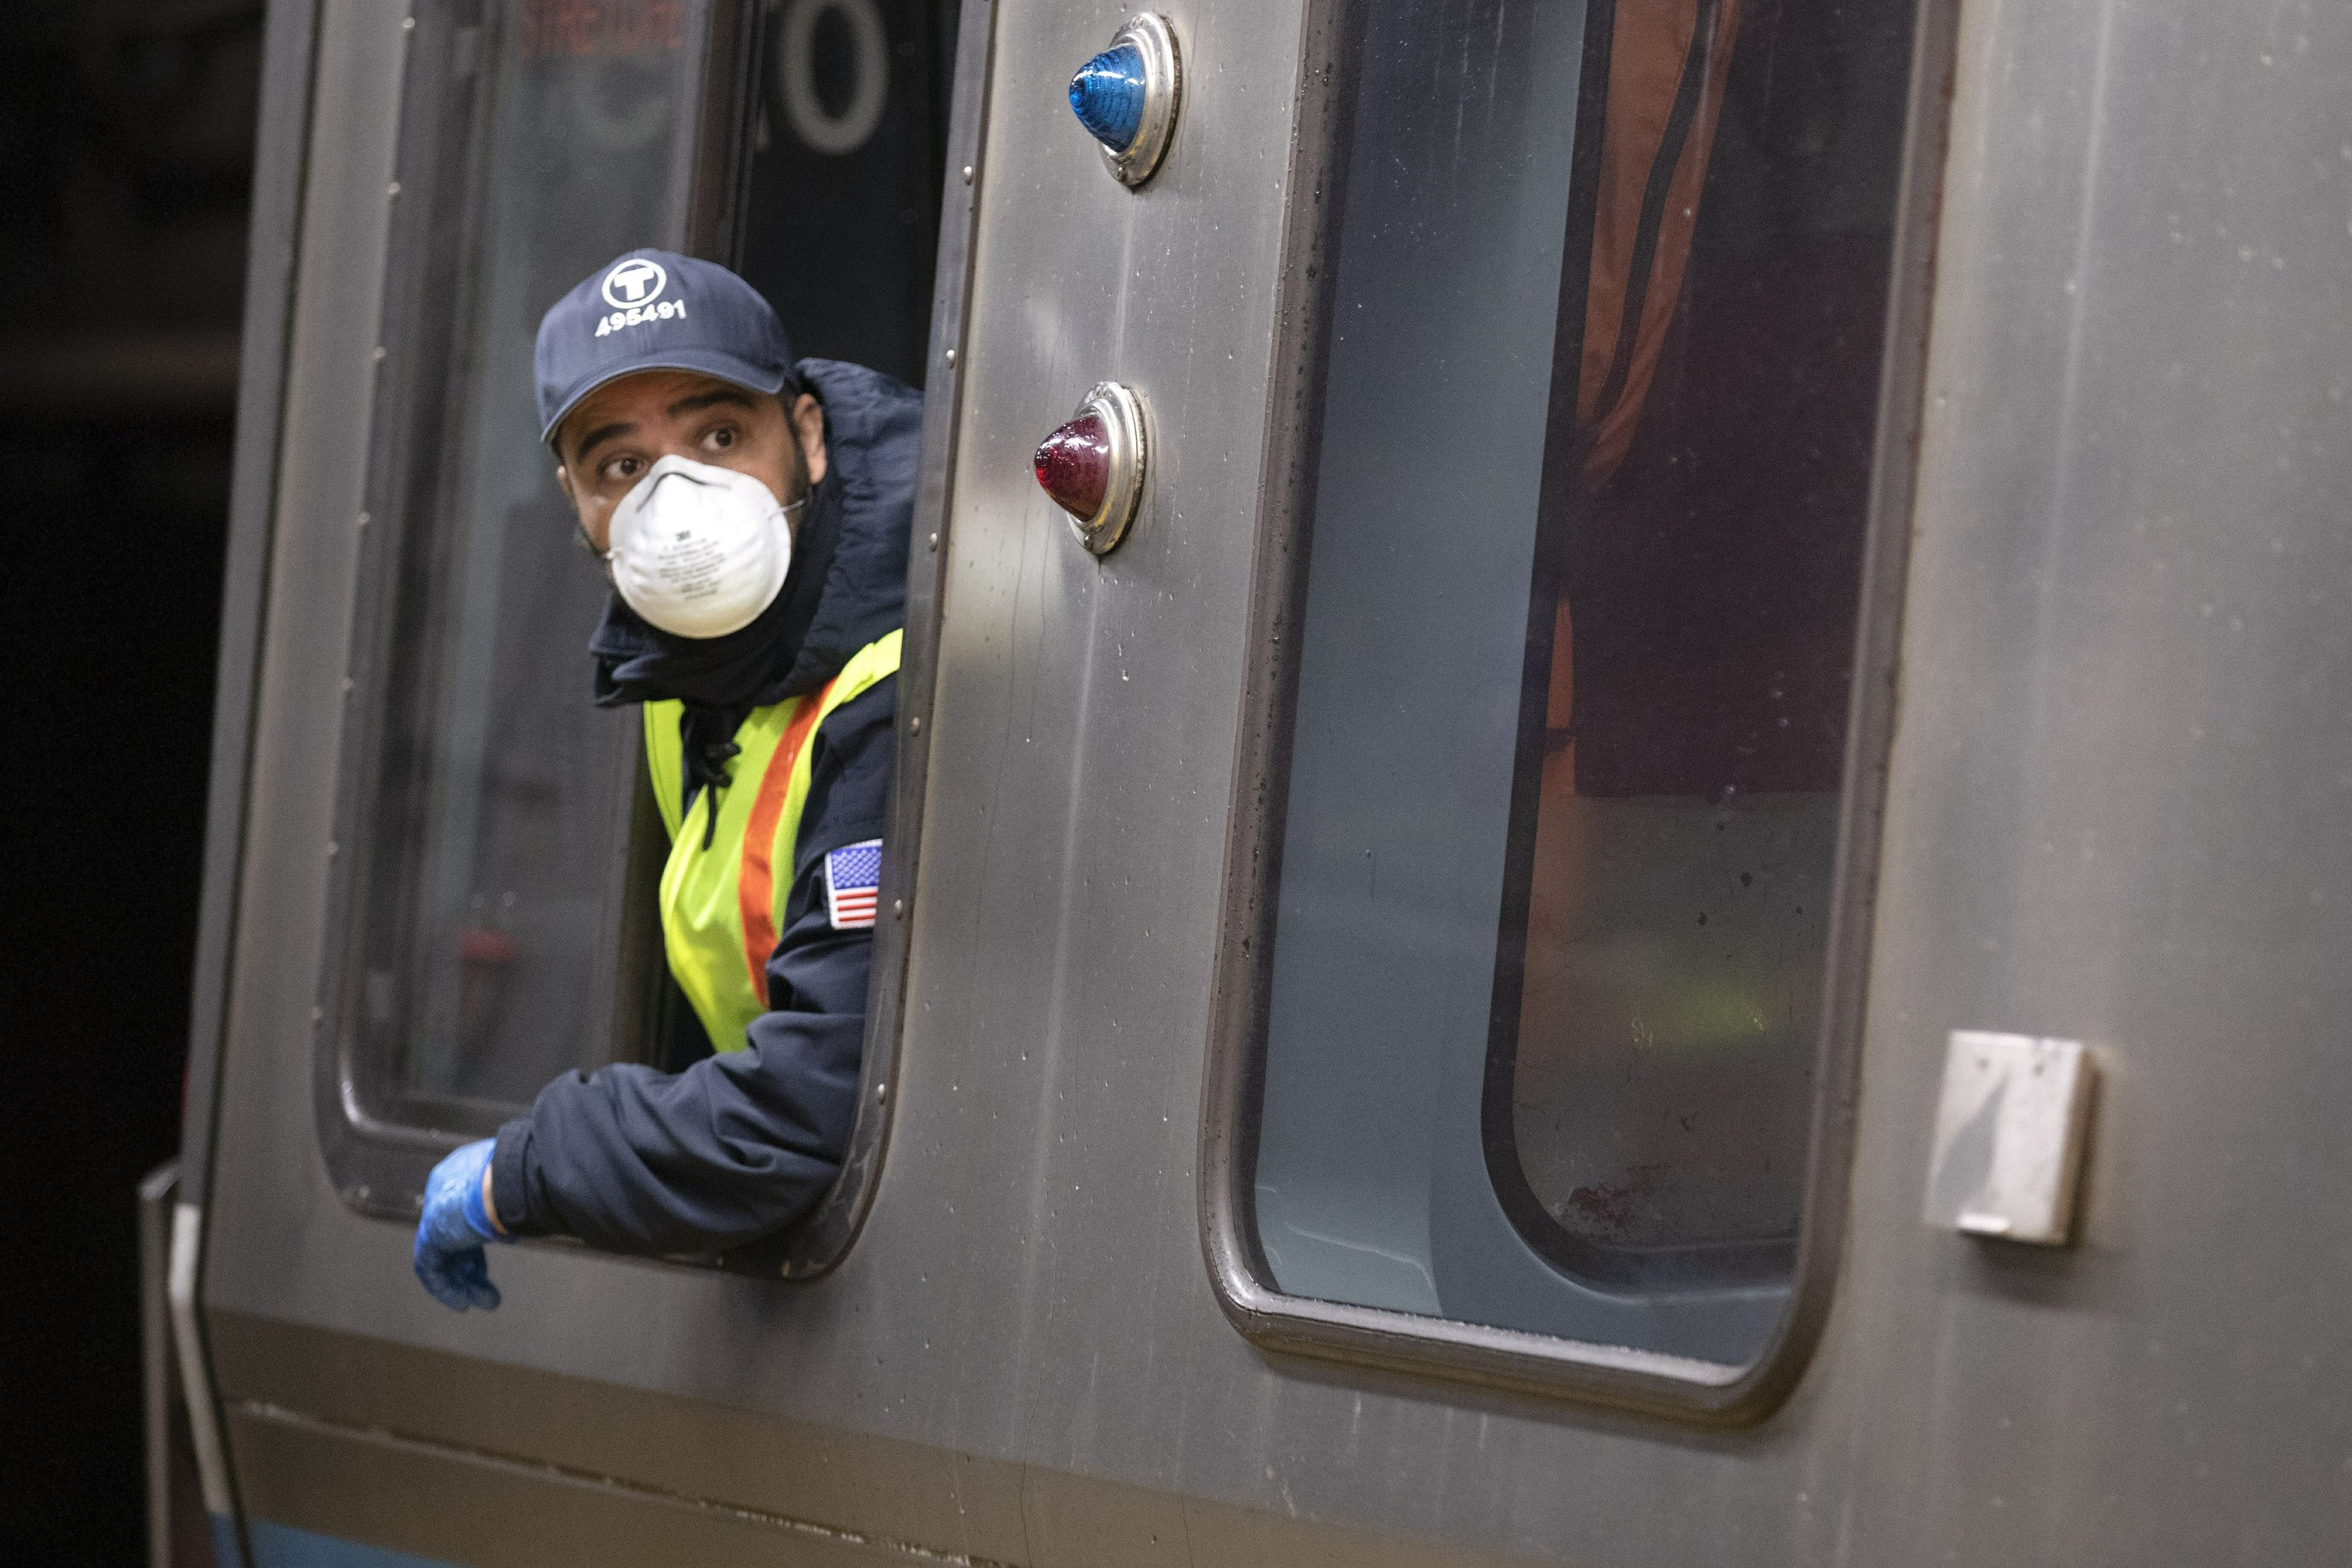 Virus threatens future of already-struggling transit systems